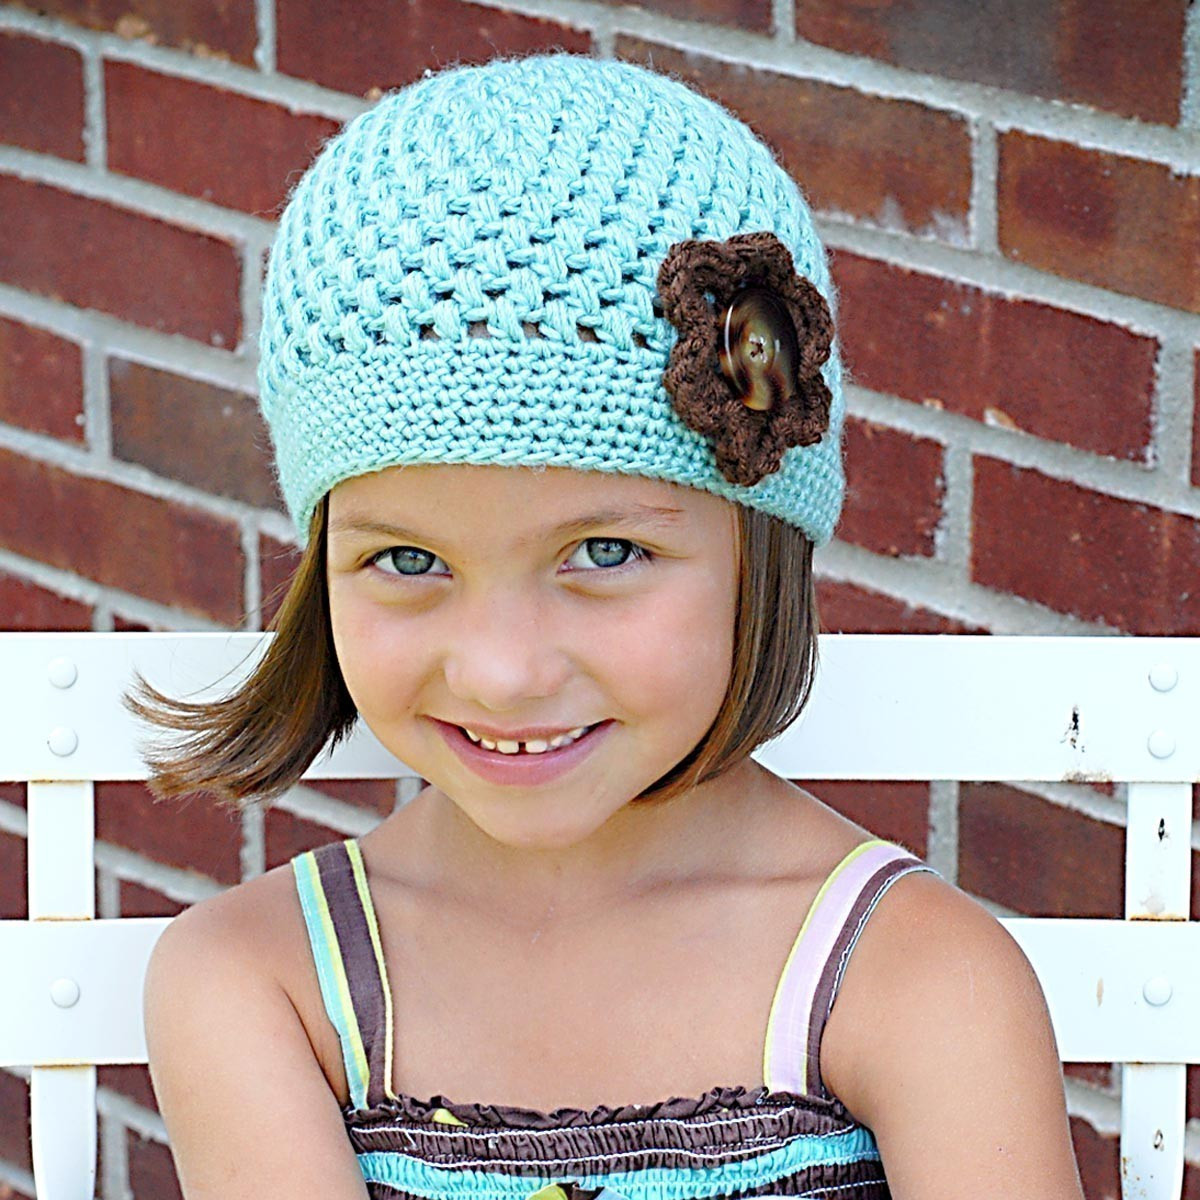 Crochet Girls Hats Elegant My Crochet Part 388 Of New 46 Ideas Crochet Girls Hats